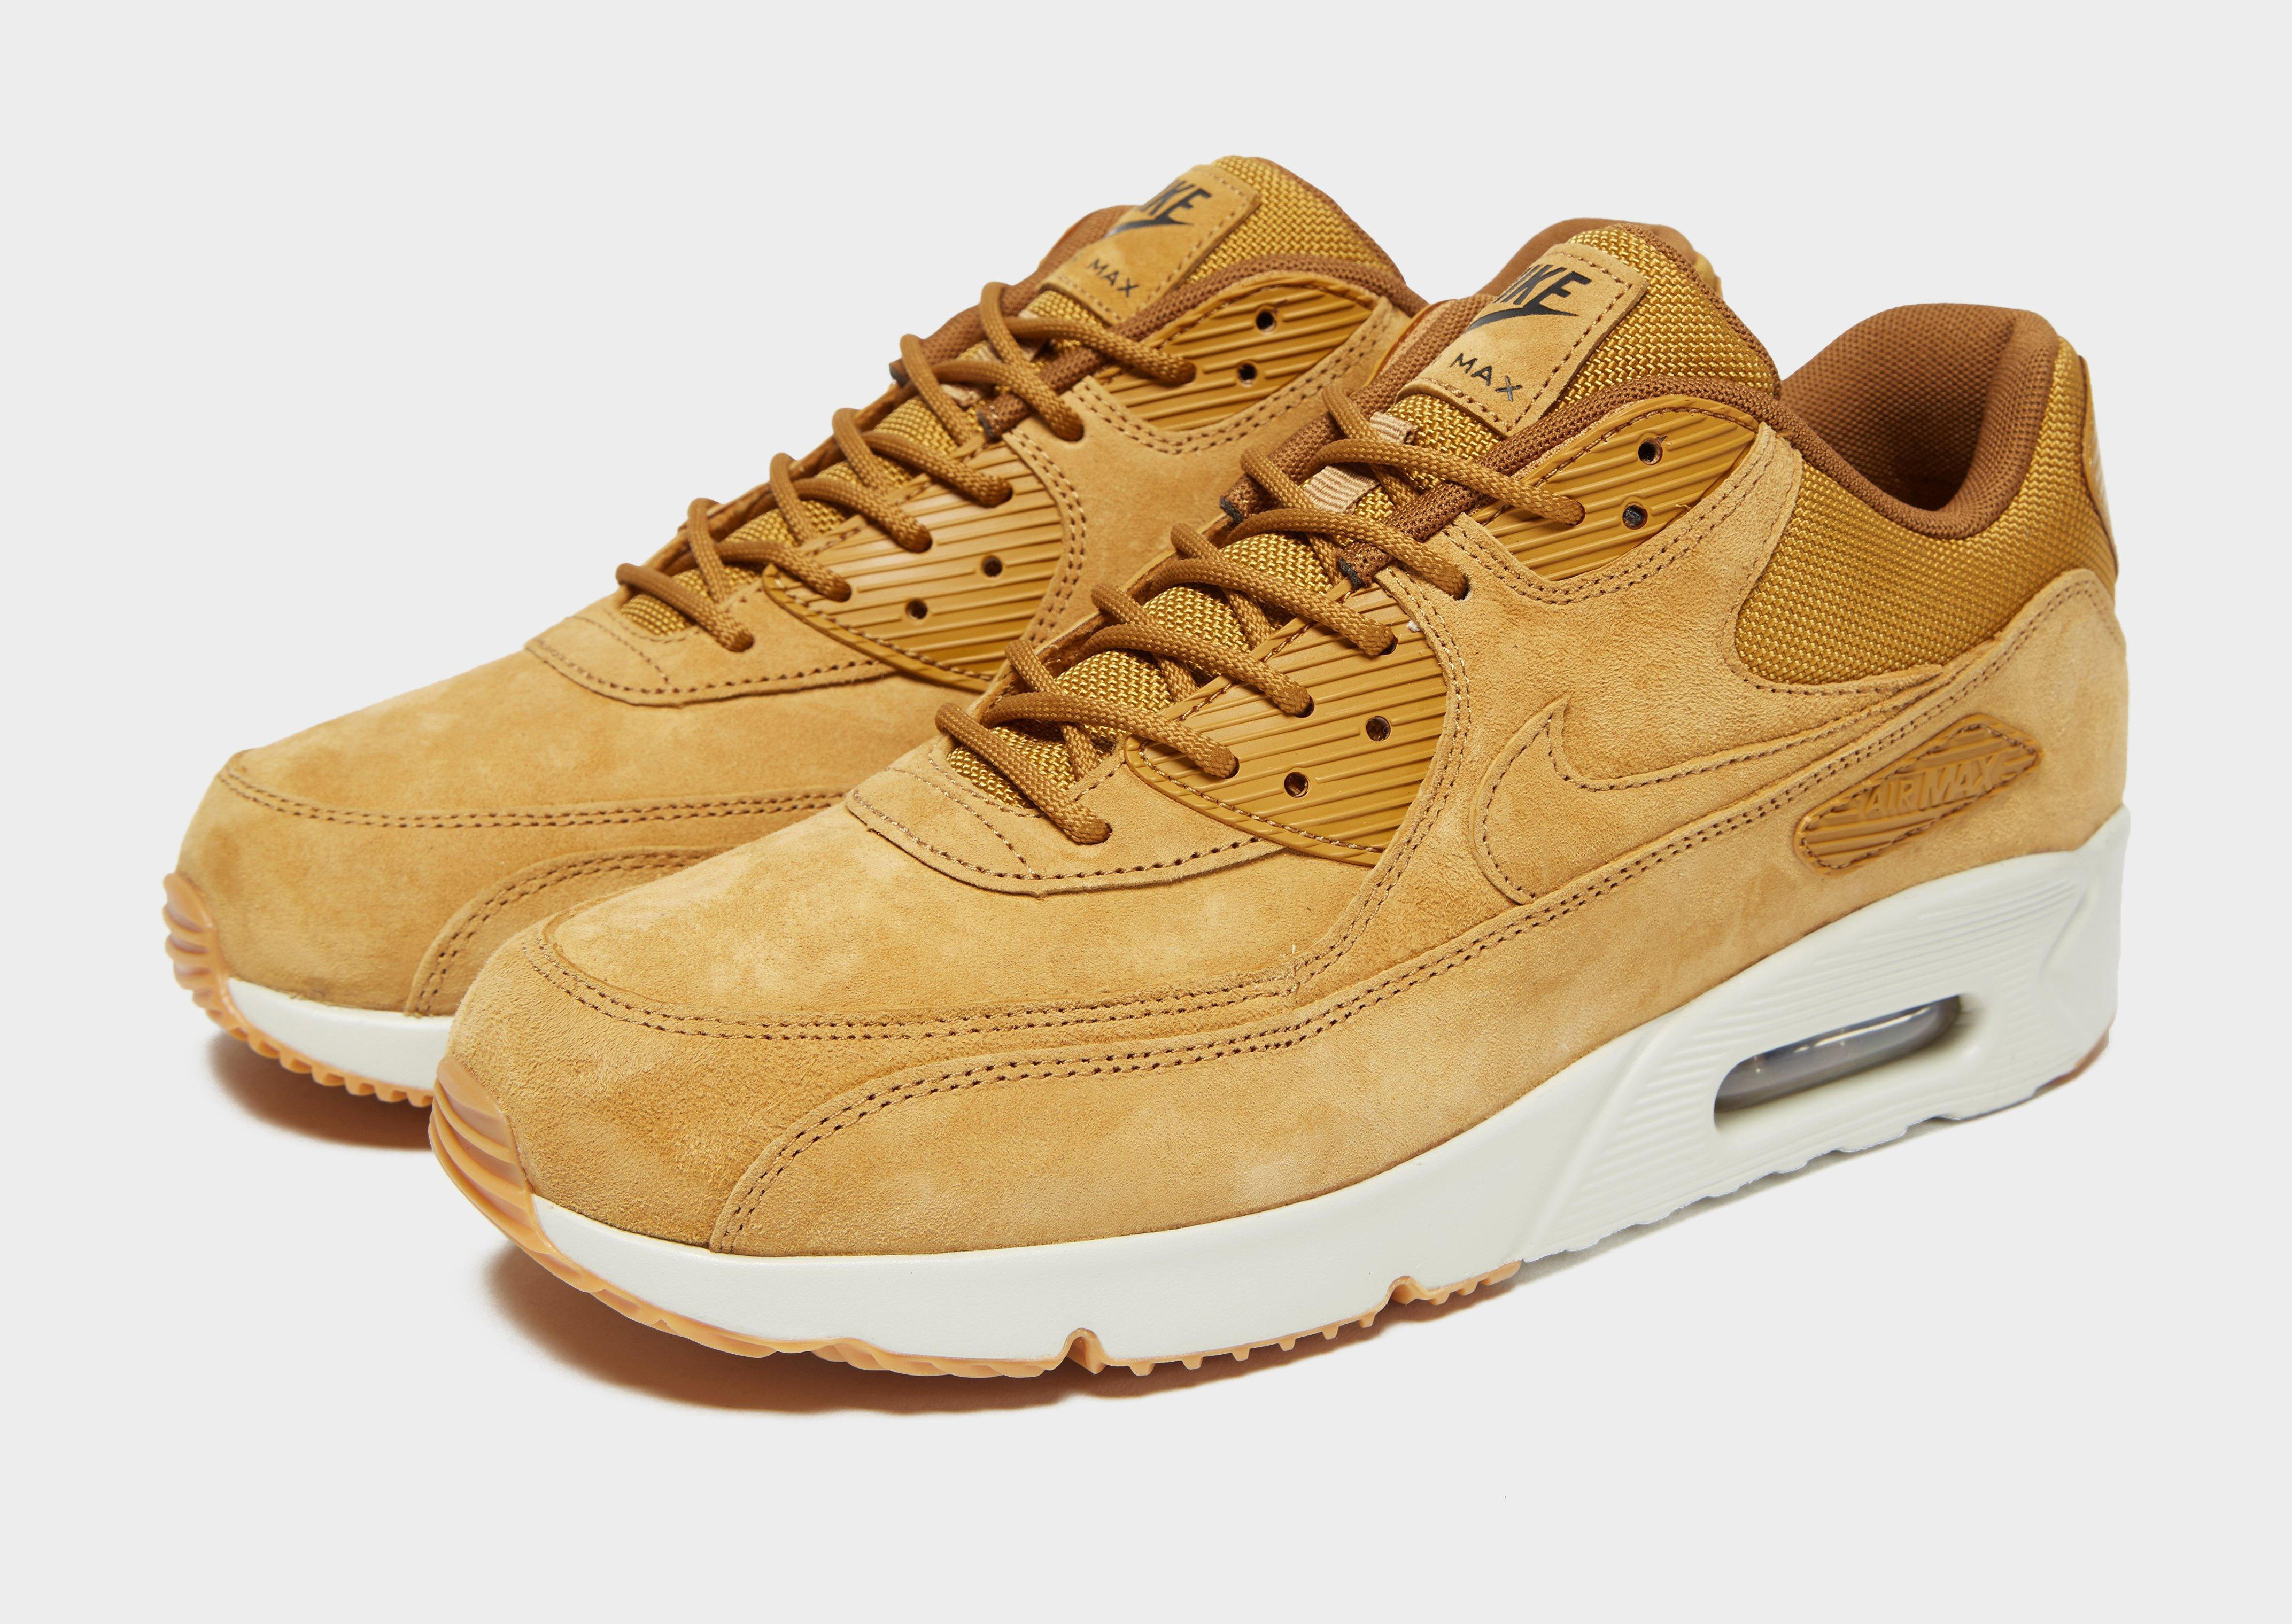 Nike Synthetic Air Max 90 Ultra 2.0 Leather Wheat/ Wheat-light ...